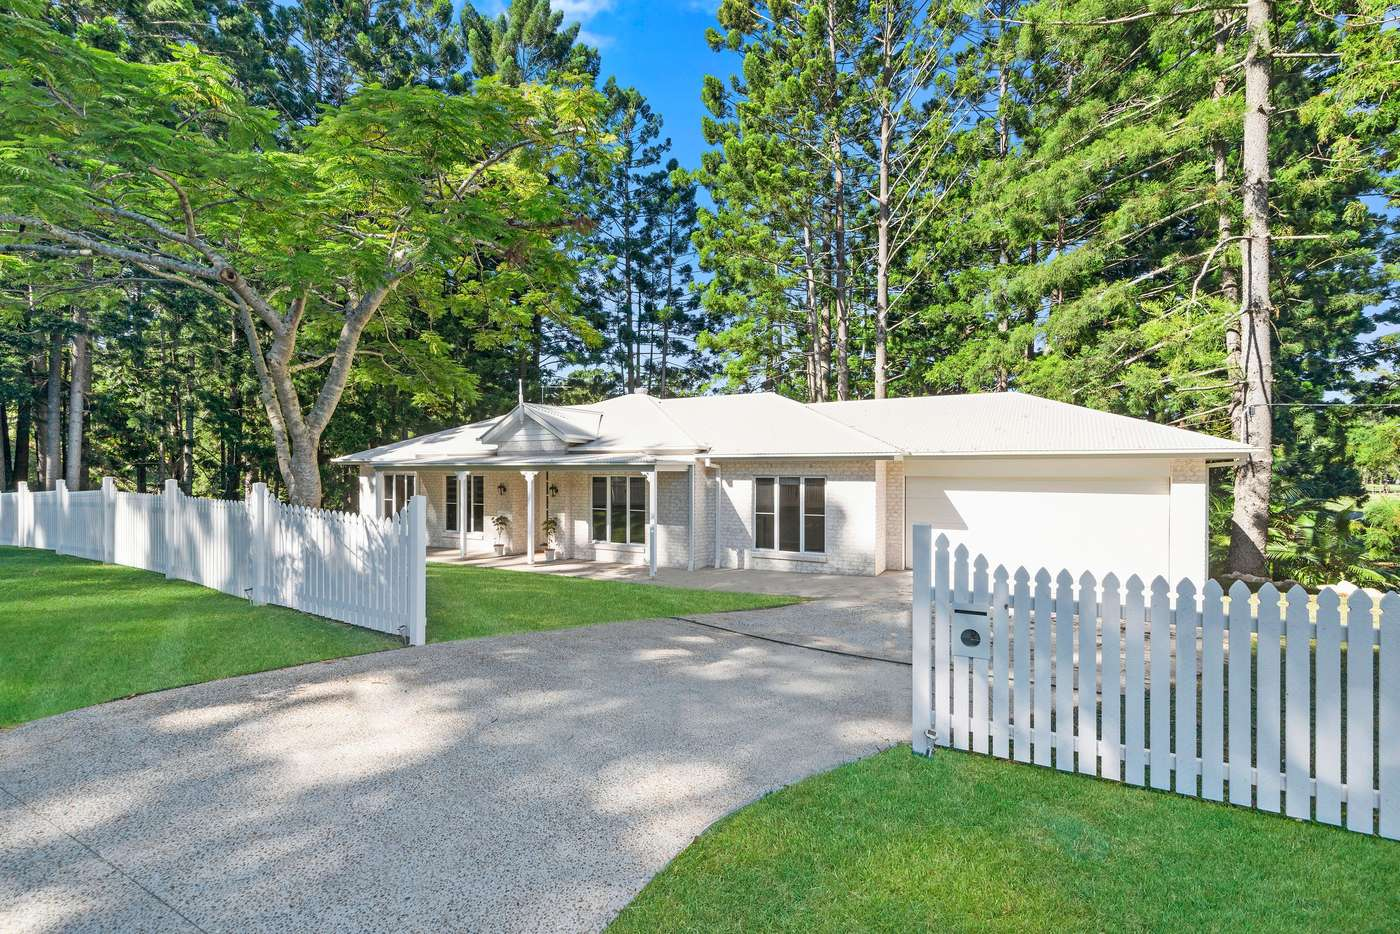 Main view of Homely house listing, 27 Bradman Drive, Currumbin Valley QLD 4223